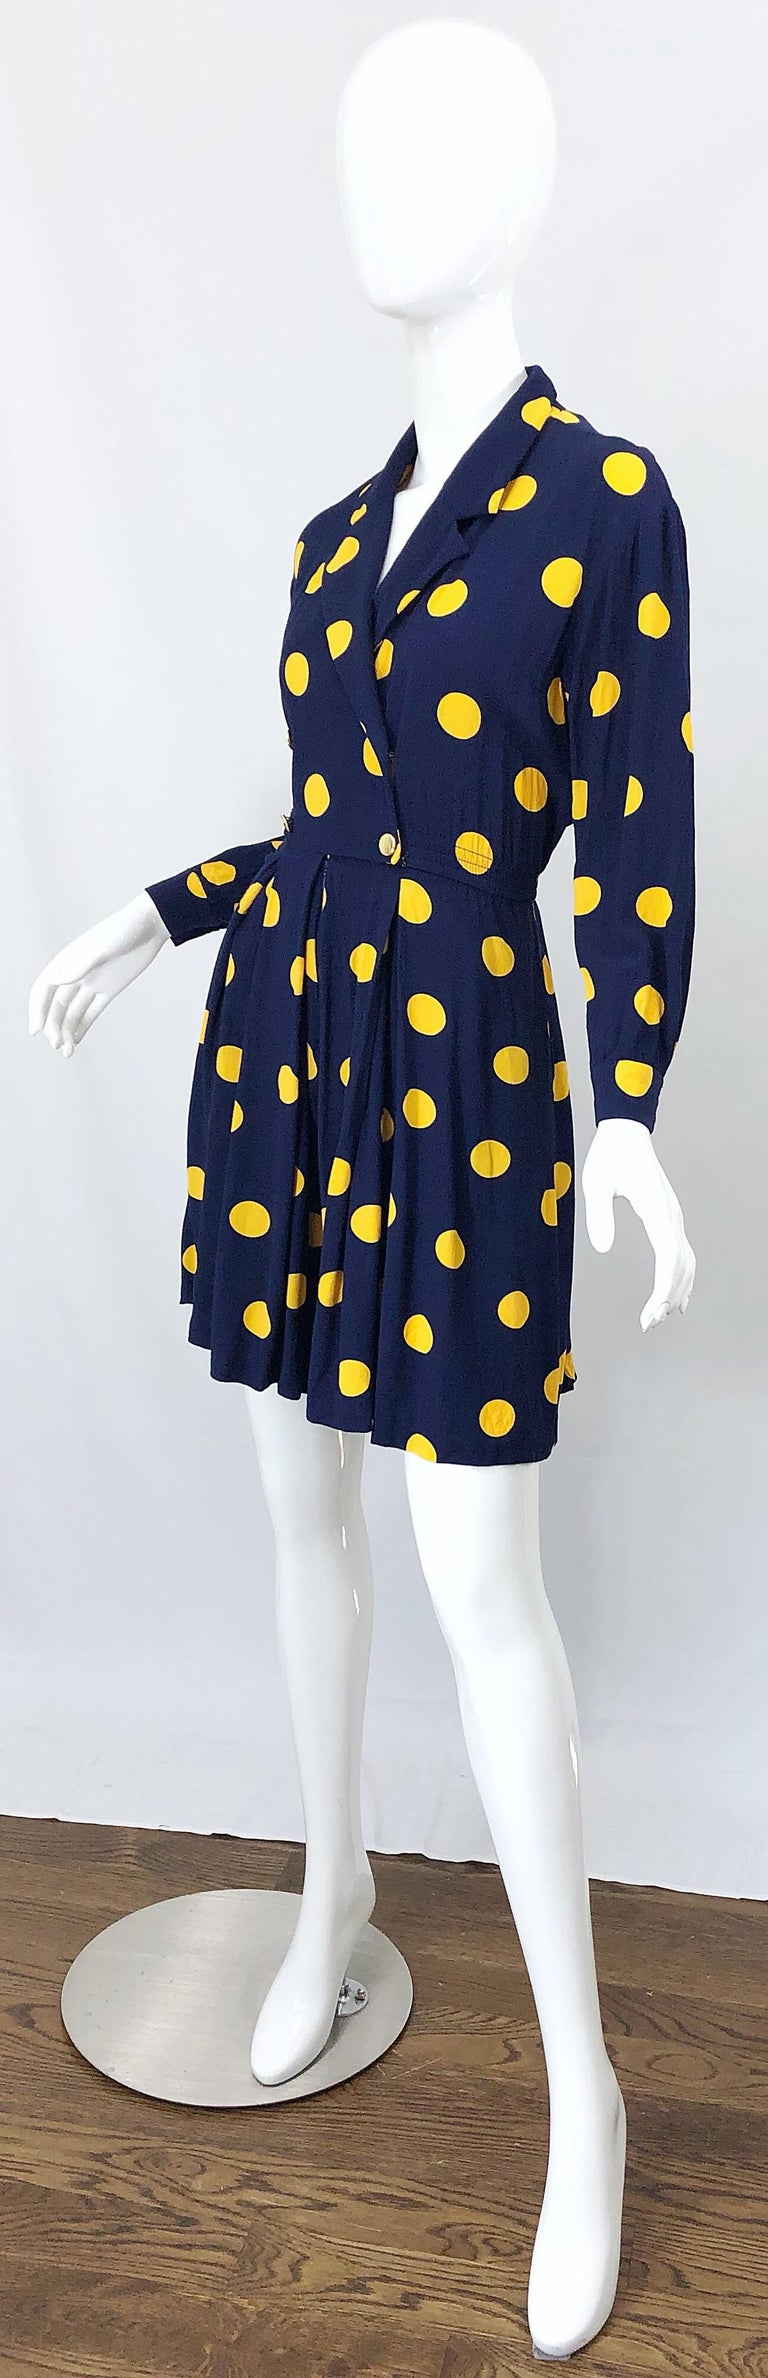 Size 8 Romper Late 1980s Navy Blue and Yellow Polka Dot 80s Vintage Romper For Sale 1